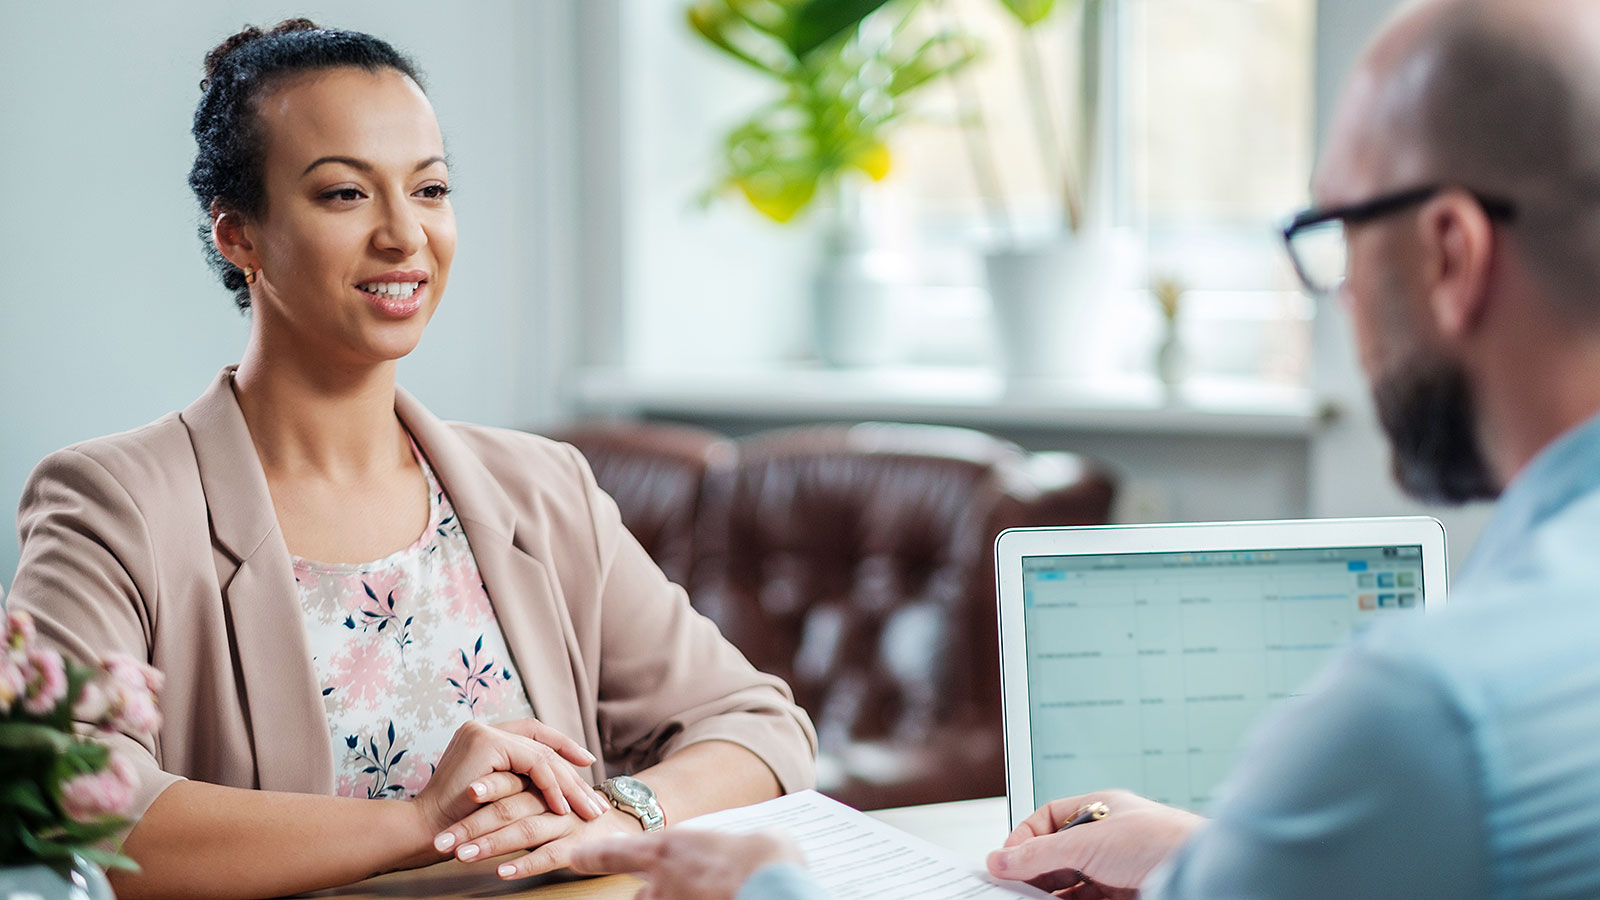 6 Super Unique Questions To Ask At The End Of A Job Interview